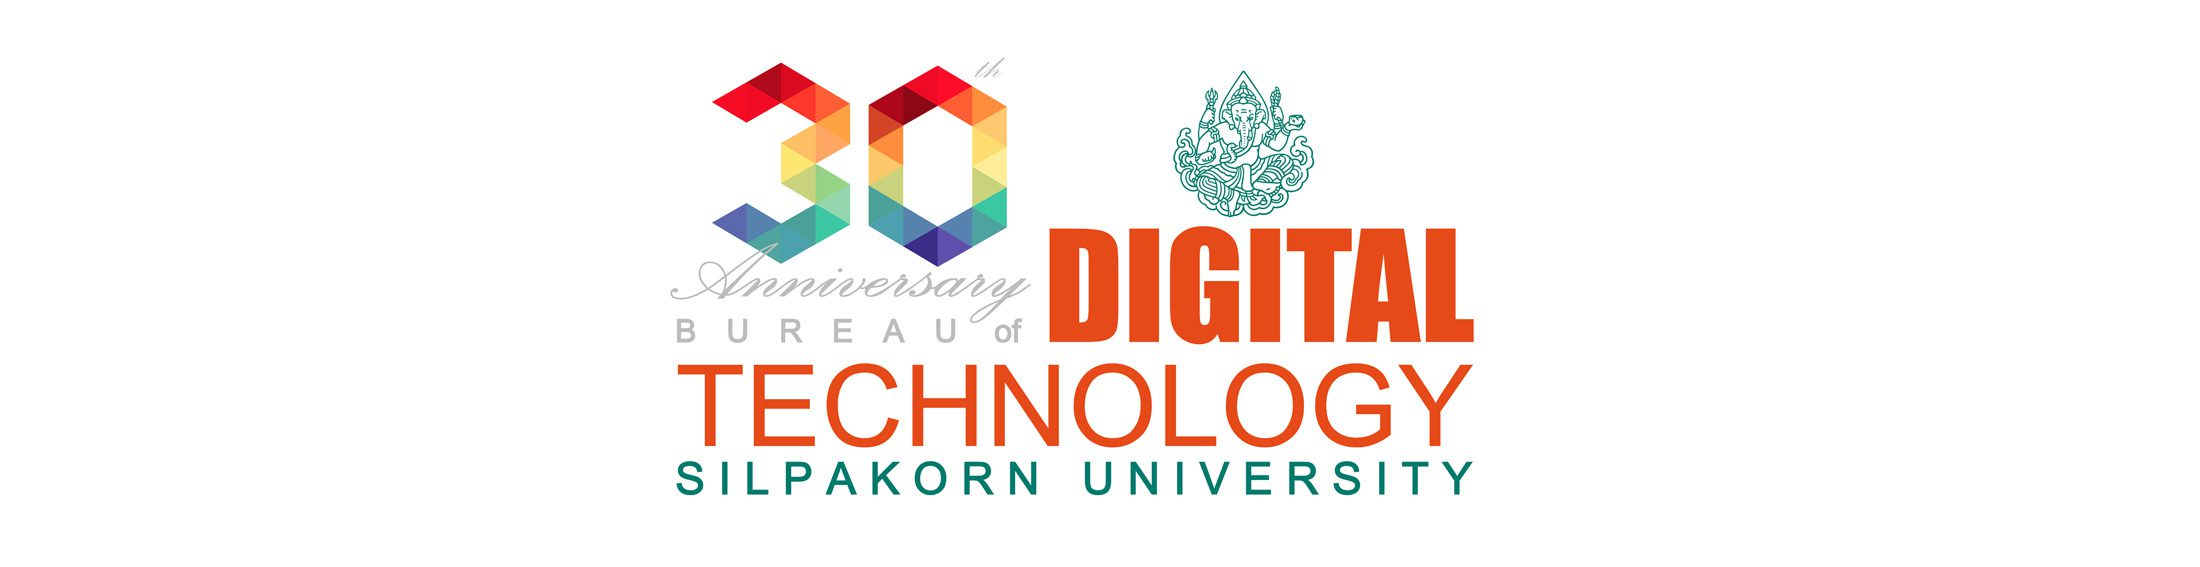 30th Anniversary Bureau of Digital Technology